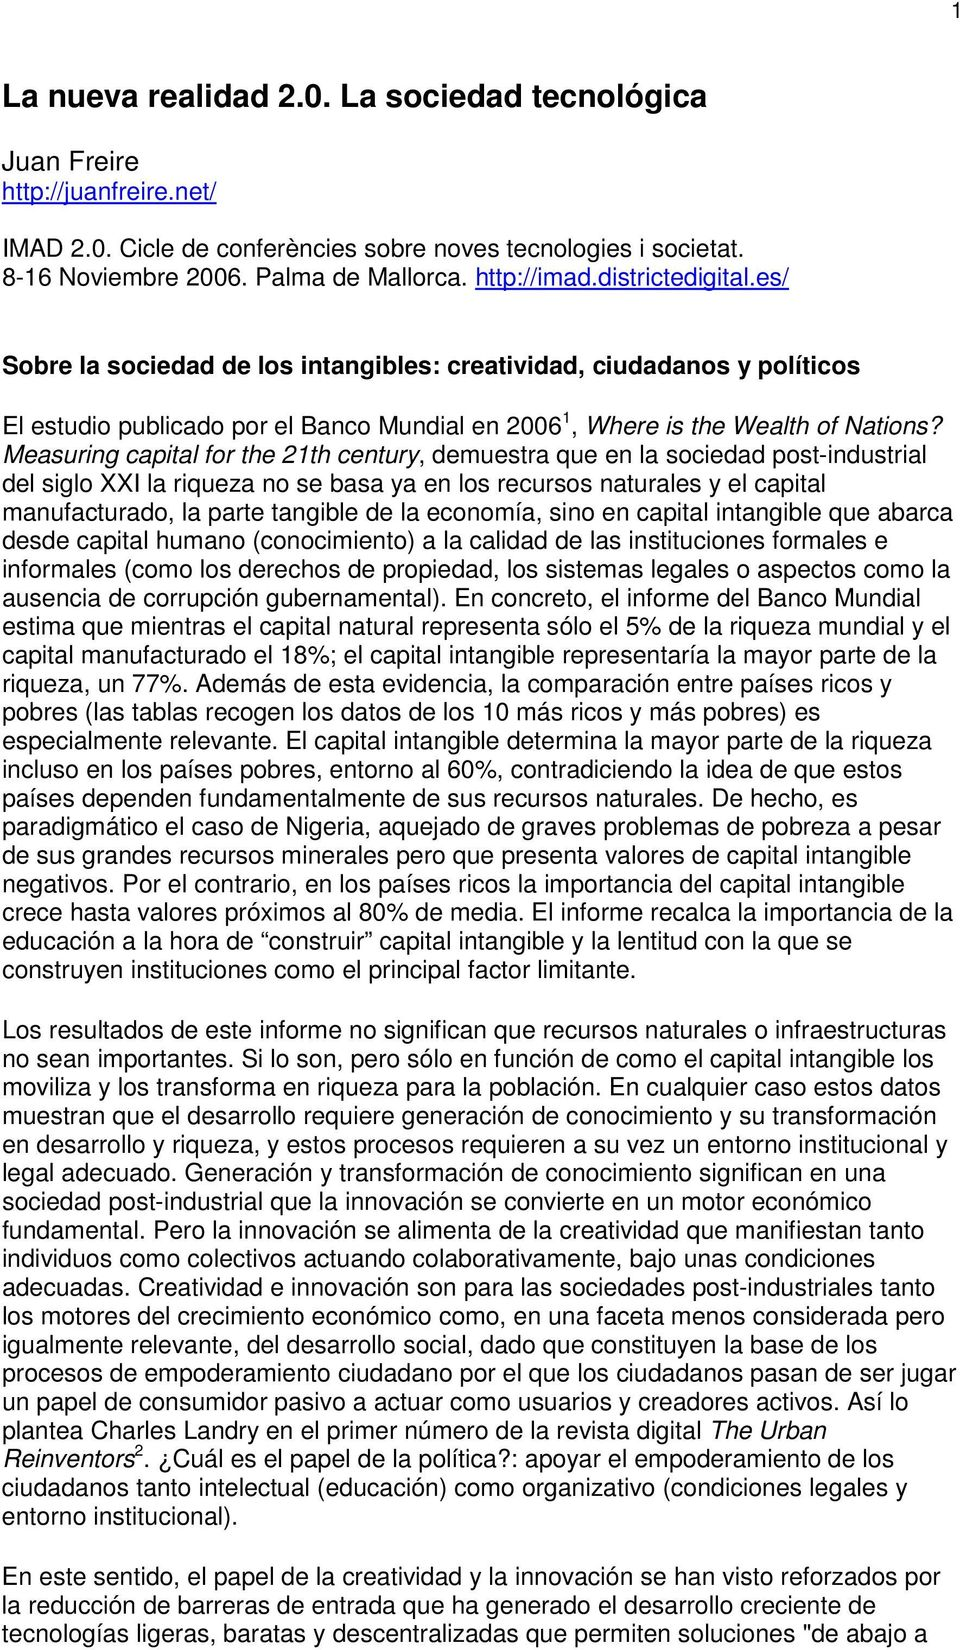 Measuring capital for the 21th century, demuestra que en la sociedad post-industrial del siglo XXI la riqueza no se basa ya en los recursos naturales y el capital manufacturado, la parte tangible de